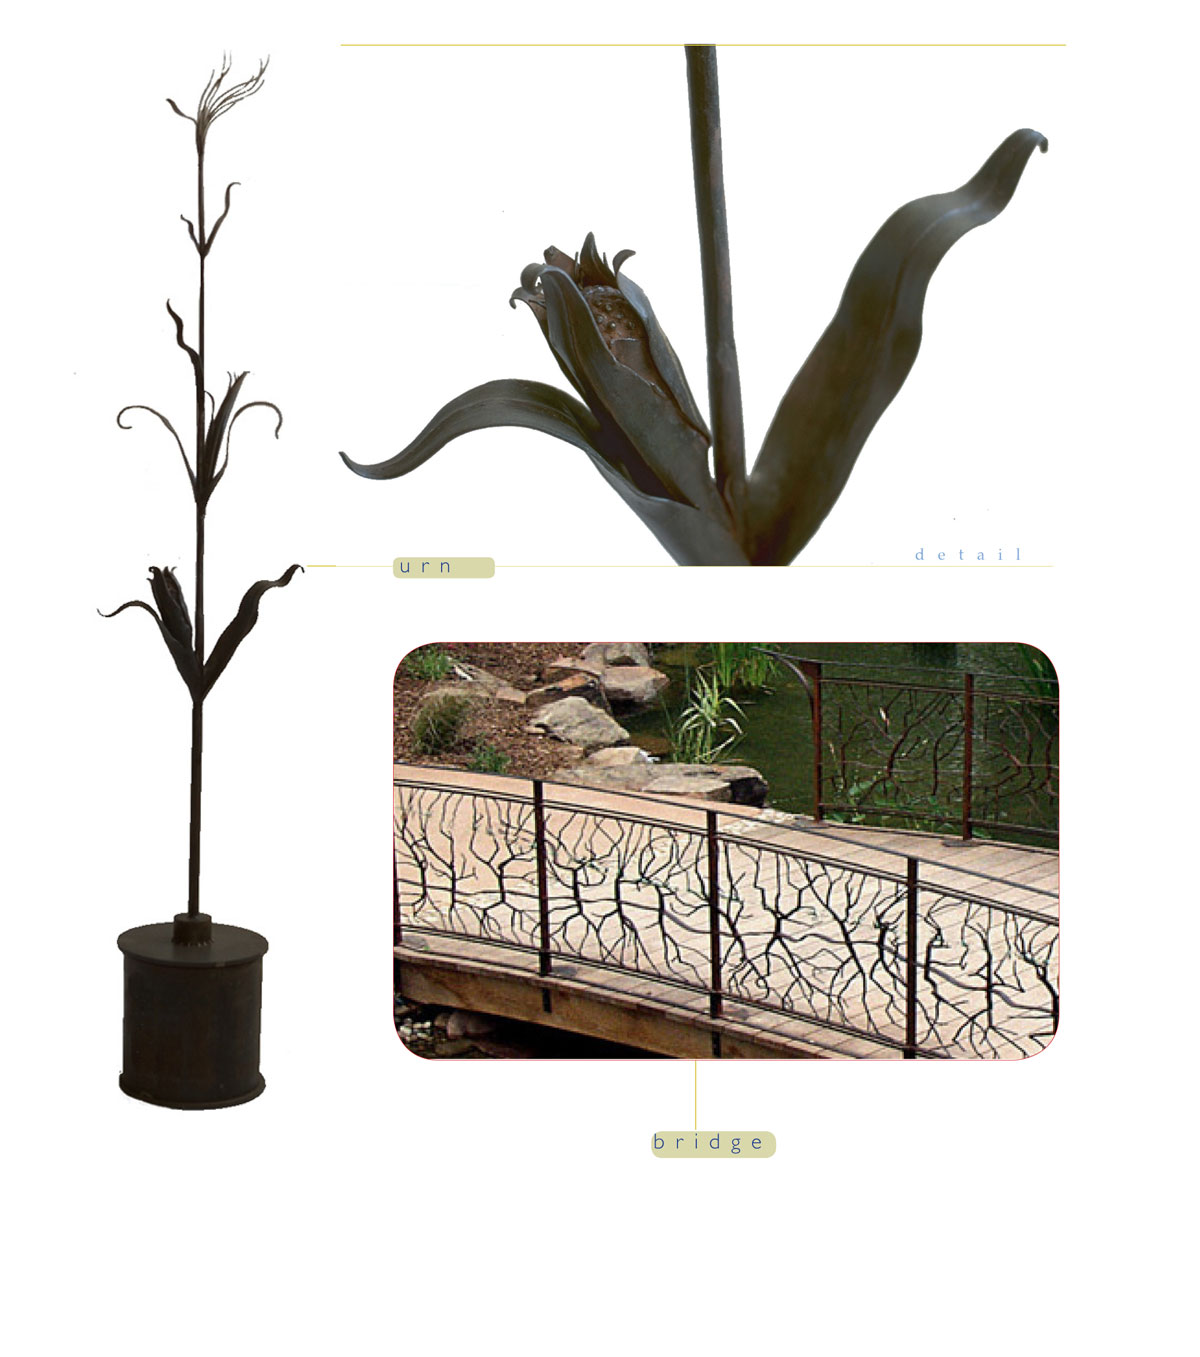 Urn and bridge are custom steel pieces made by Chad Manley Design.